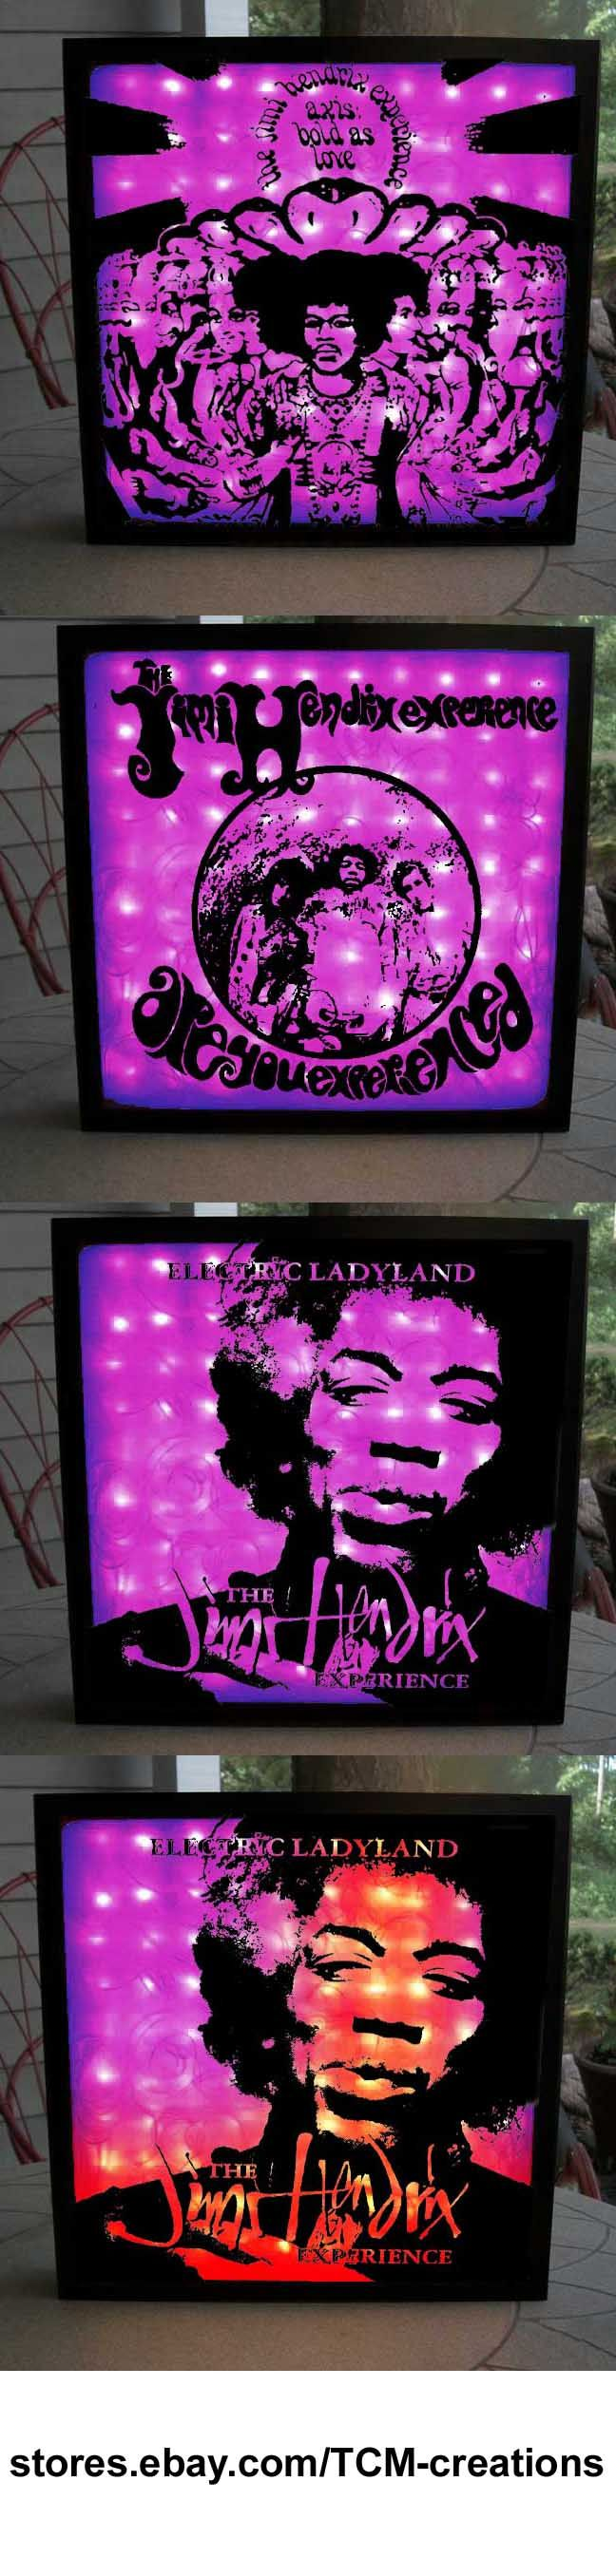 Jimi Hendrix shadow boxes with LED lighting.  Jimi Hendrix Experience, Purple Haze, Are You Experienced?, Hey Joe, The Wind Cries Mary, Axis: Bold As Love, Electric Ladyland, Noel Redding, Mitch Mitchel